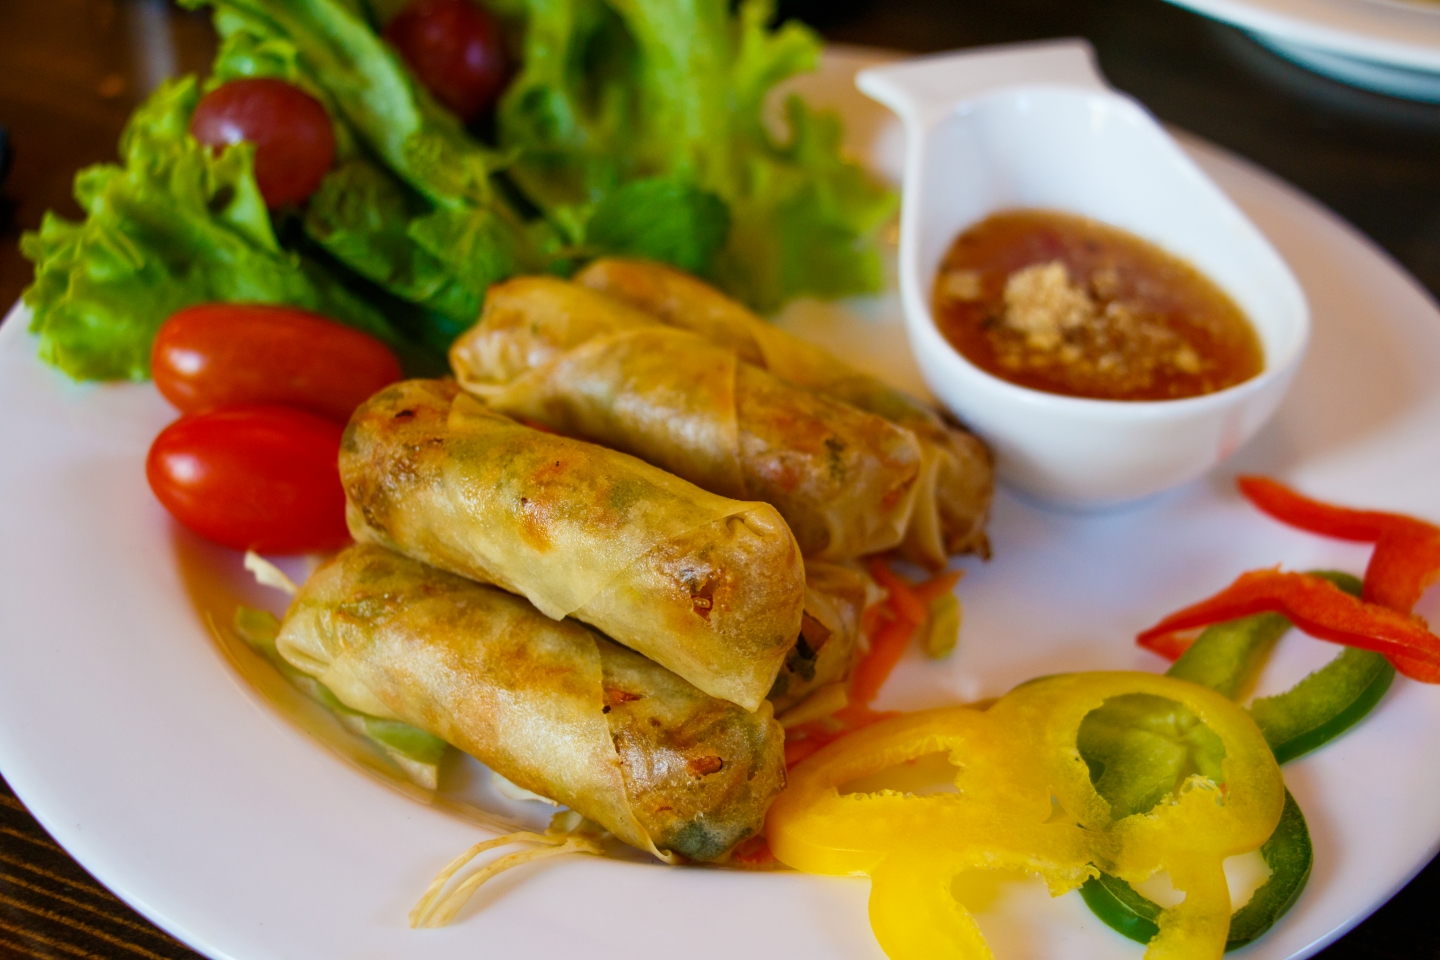 The House Fusion Thai spring rolls